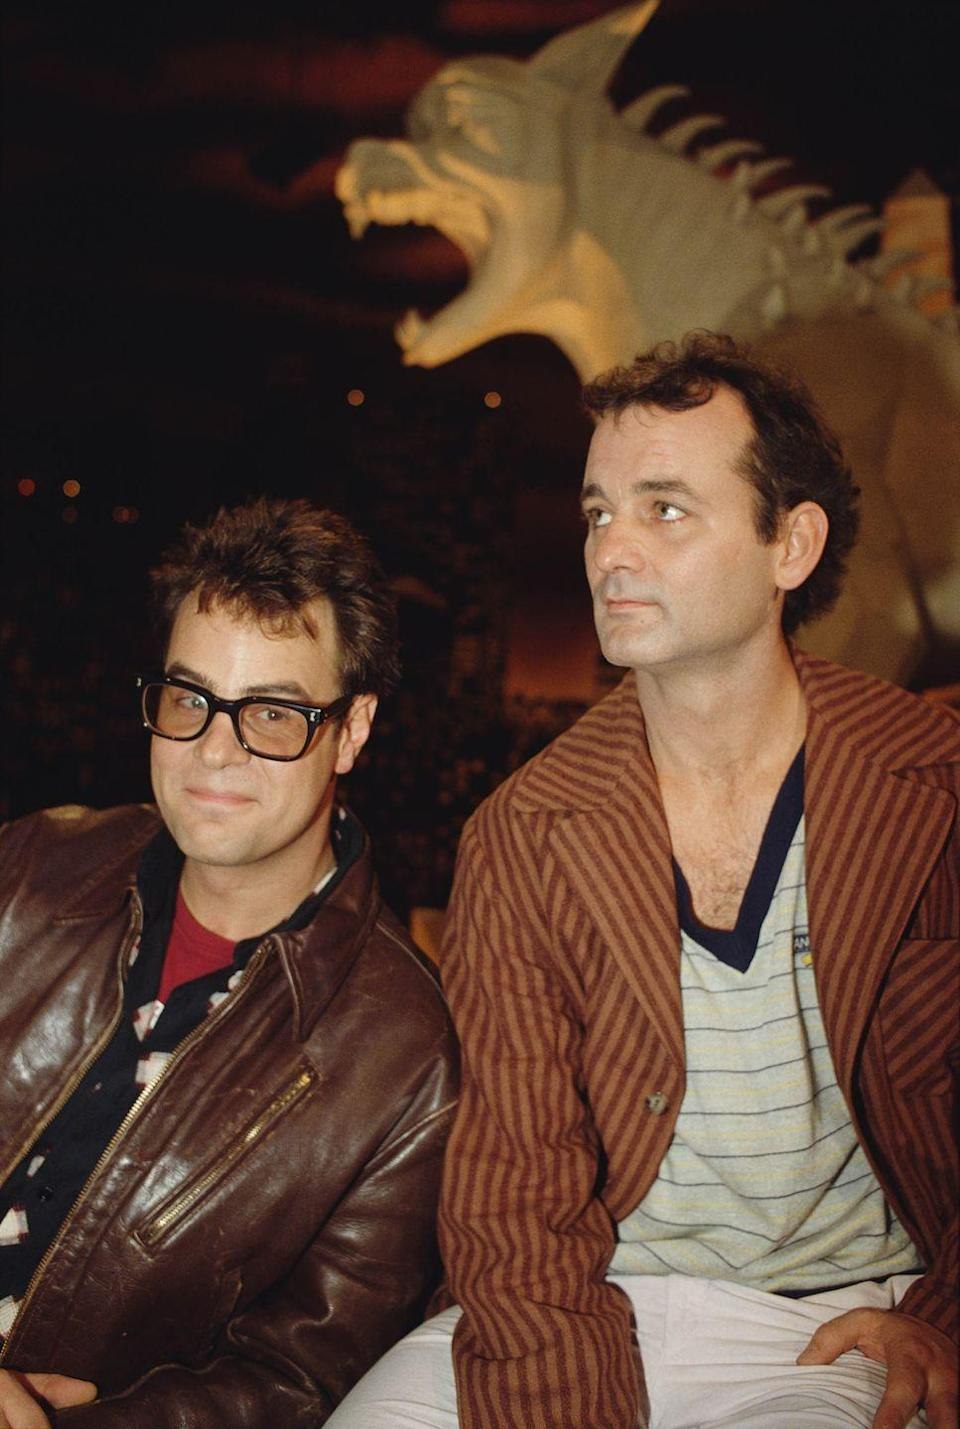 <p>Dan Aykroyd and Bill Murray attend the premiere of the movie <em>Ghostbusters</em>, directed and produced by Ivan Reitman in 1974.</p>